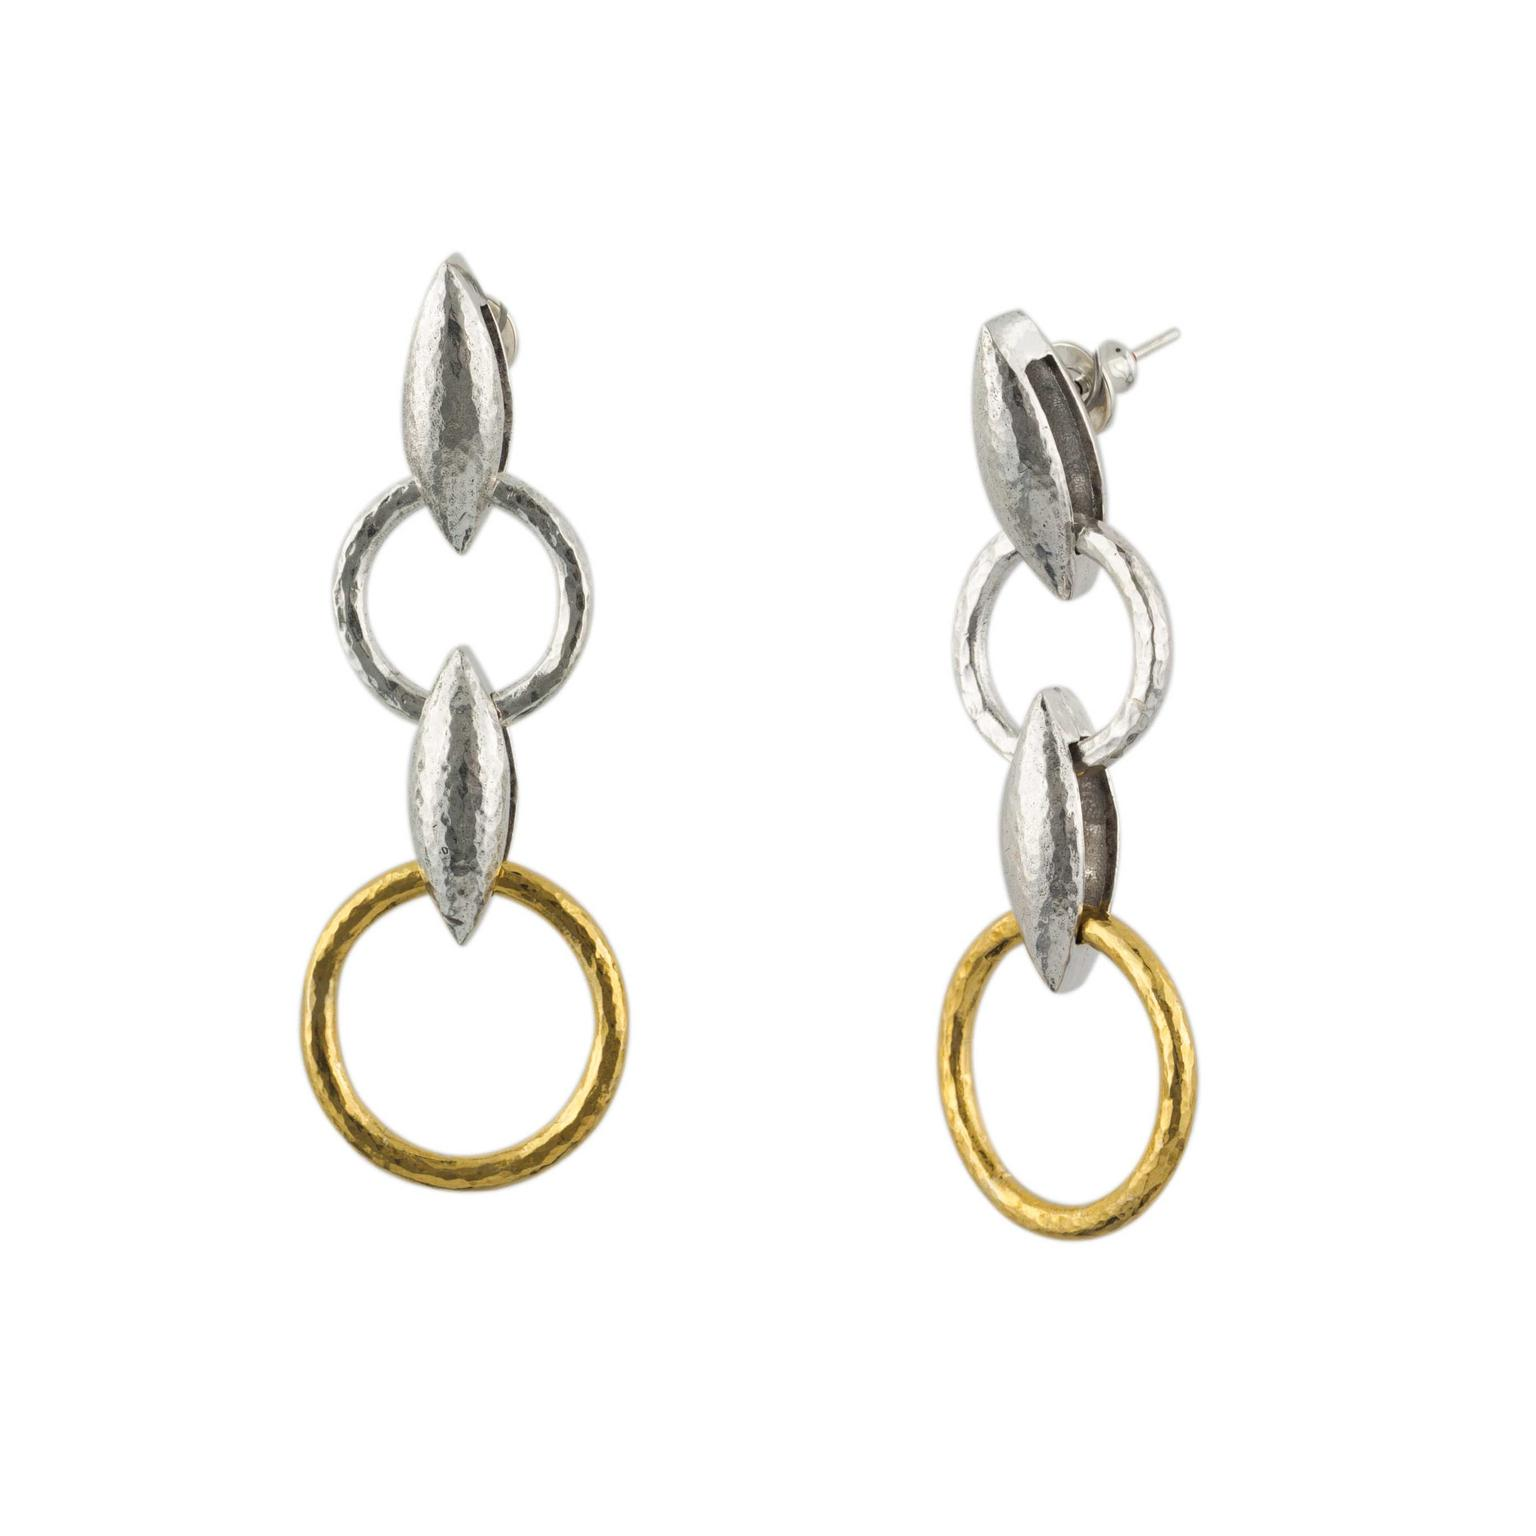 Gurhan Wheatla Double Drop Earring in Sterling Silver Layered with 24ct Gold